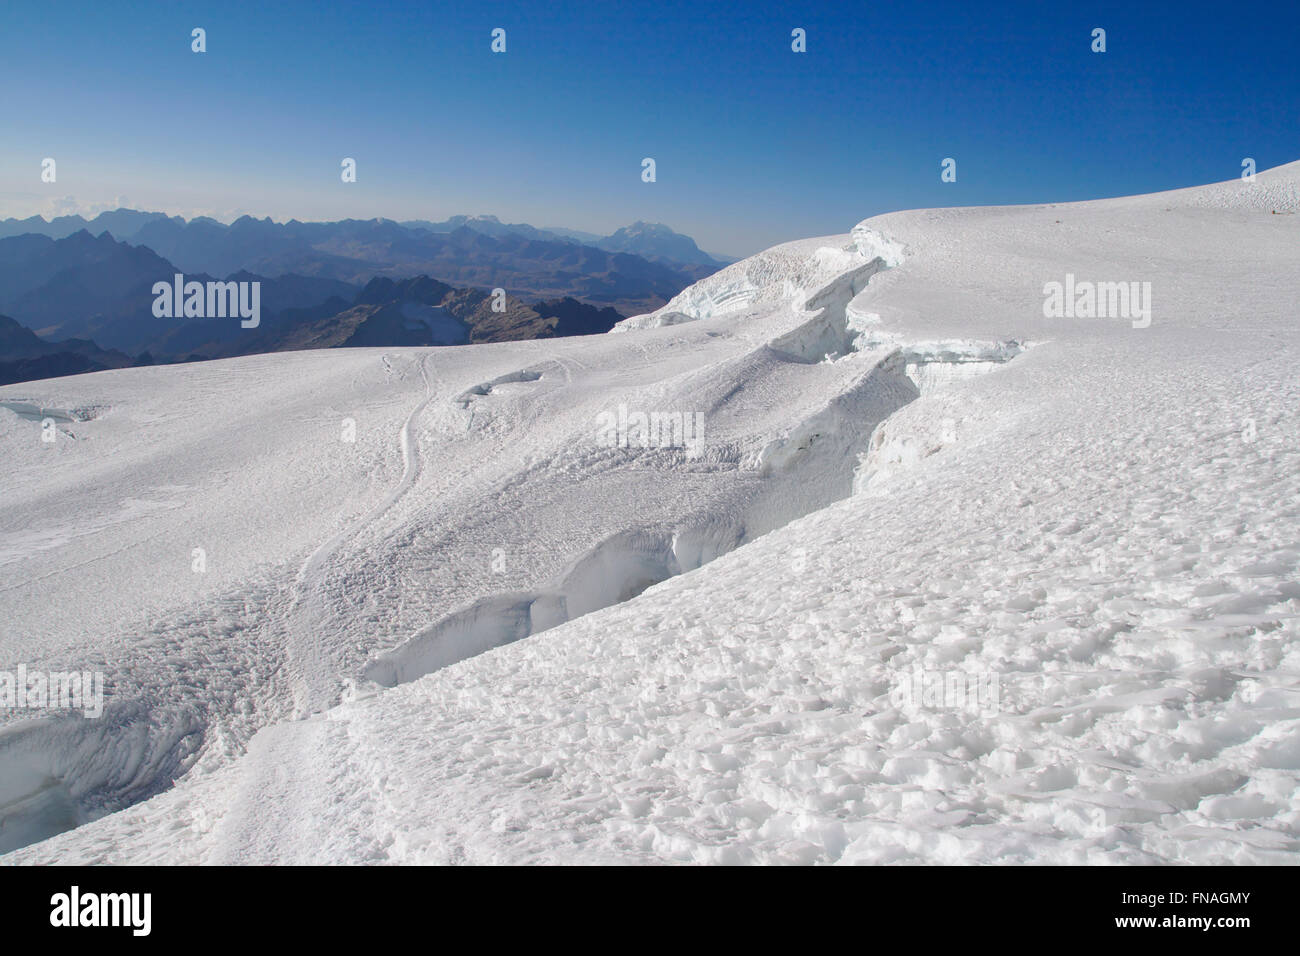 View from the glacier of Huayna Potosi over the Andes toward Illimani, Bolivia - Stock Image